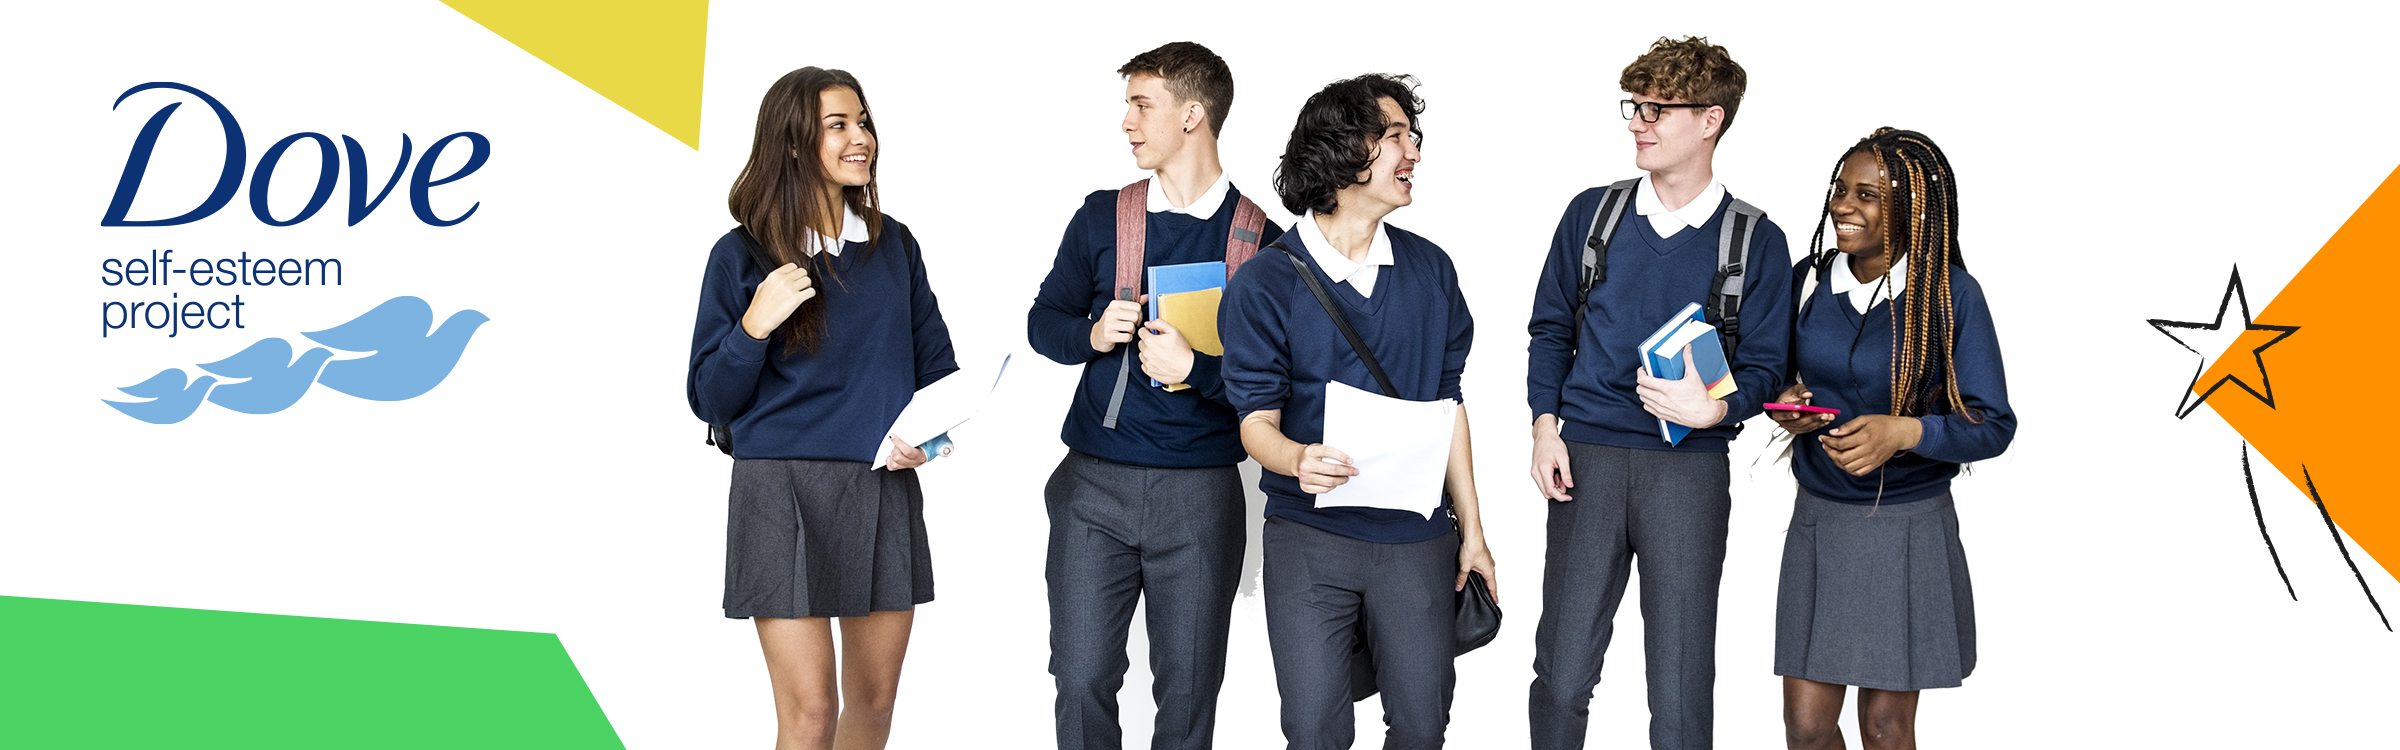 Image of 5 secondary school pupils smiling and walking with graphic coloured blocks and Dove logo